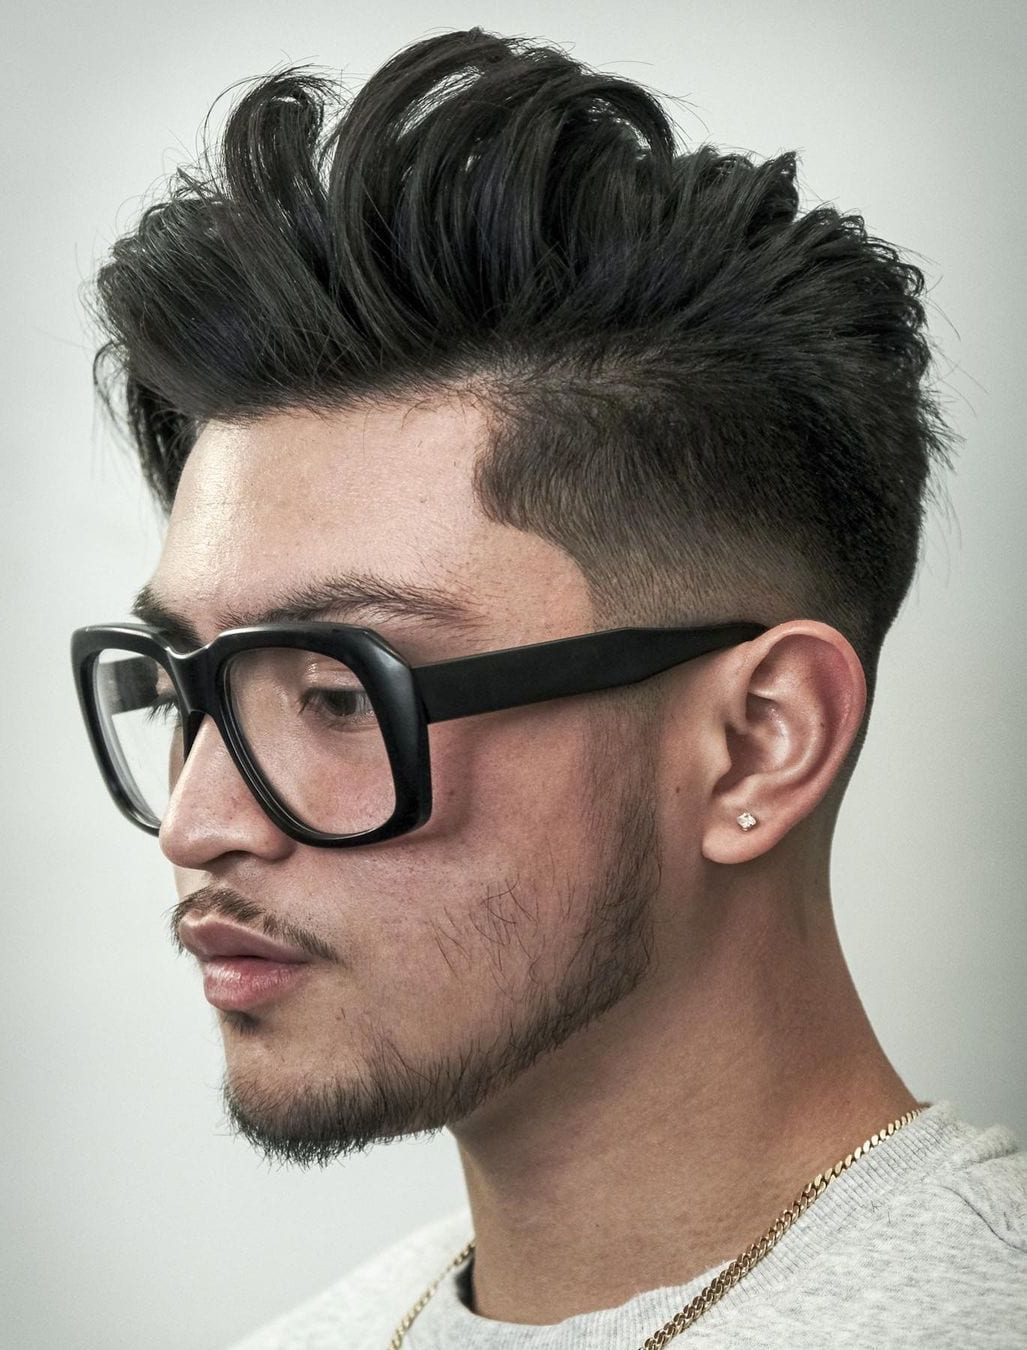 Long Top with Tapered Sides